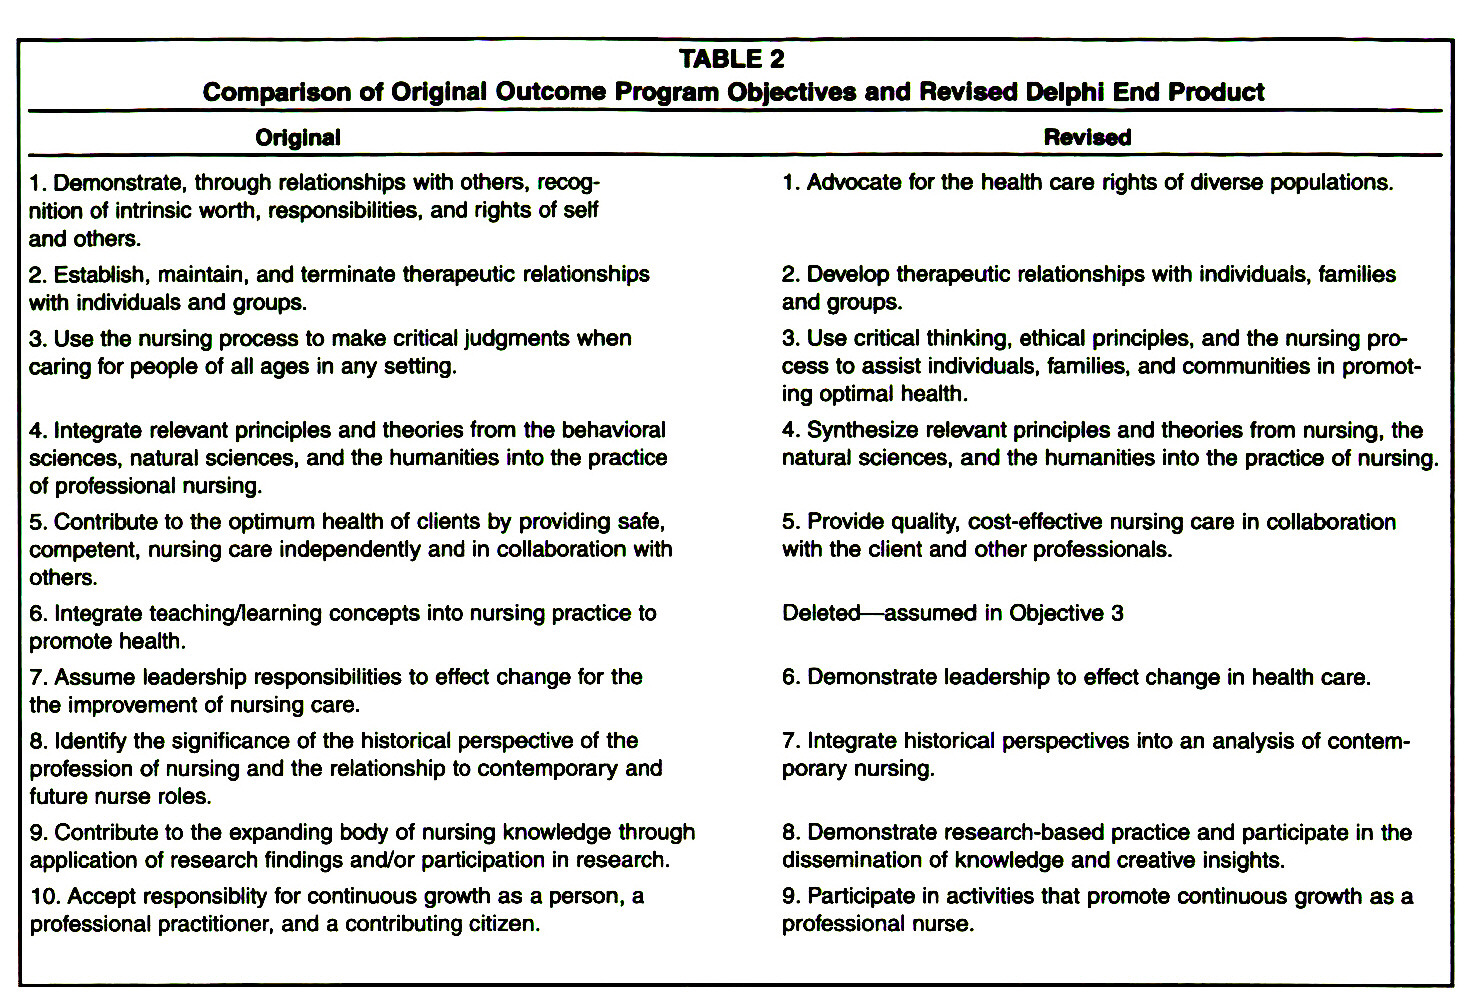 TABLE 2Comparison of Original Outcome Program Objectives and Revised Delphi End Product